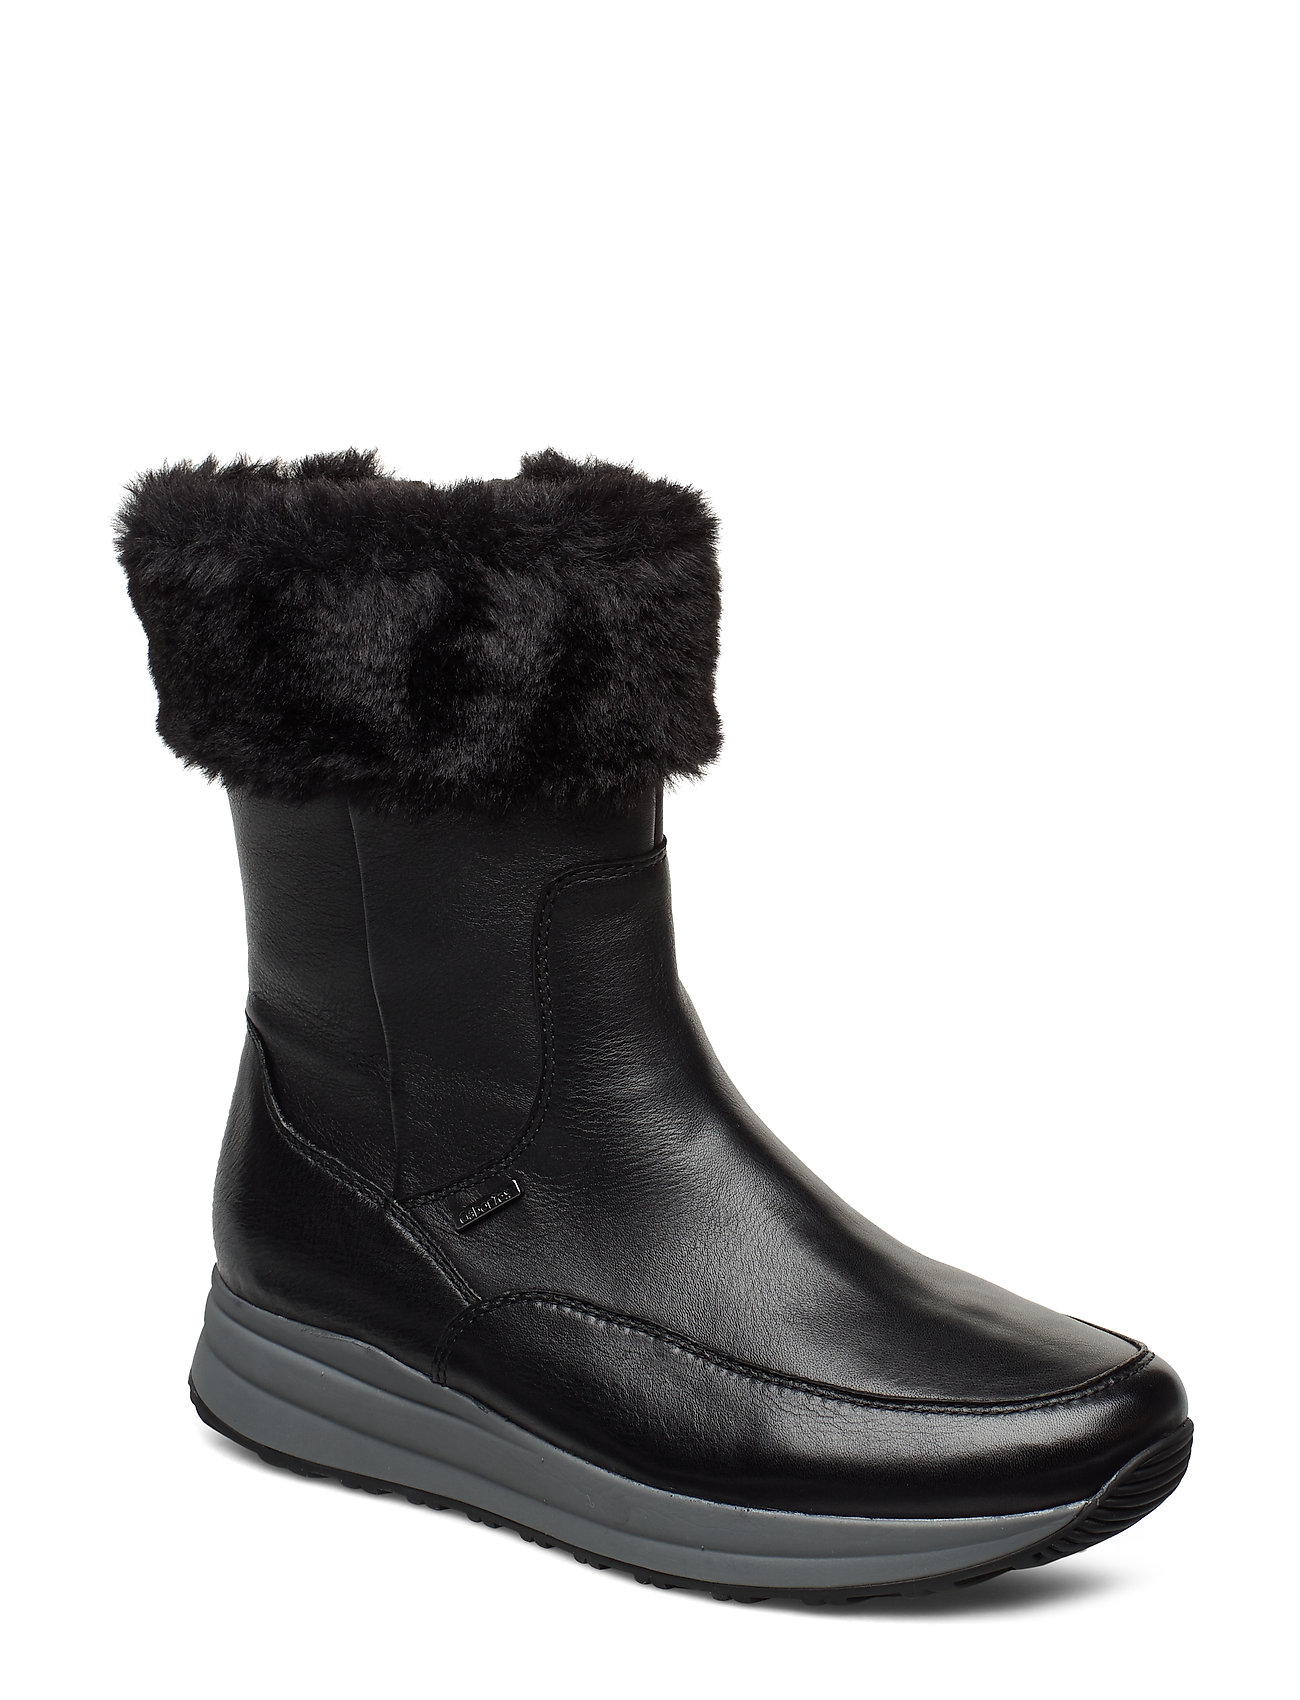 Image of Ankle Boot With Gabor-Tex Shoes Boots Ankle Boots Ankle Boot - Flat Sort Gabor (3406243657)